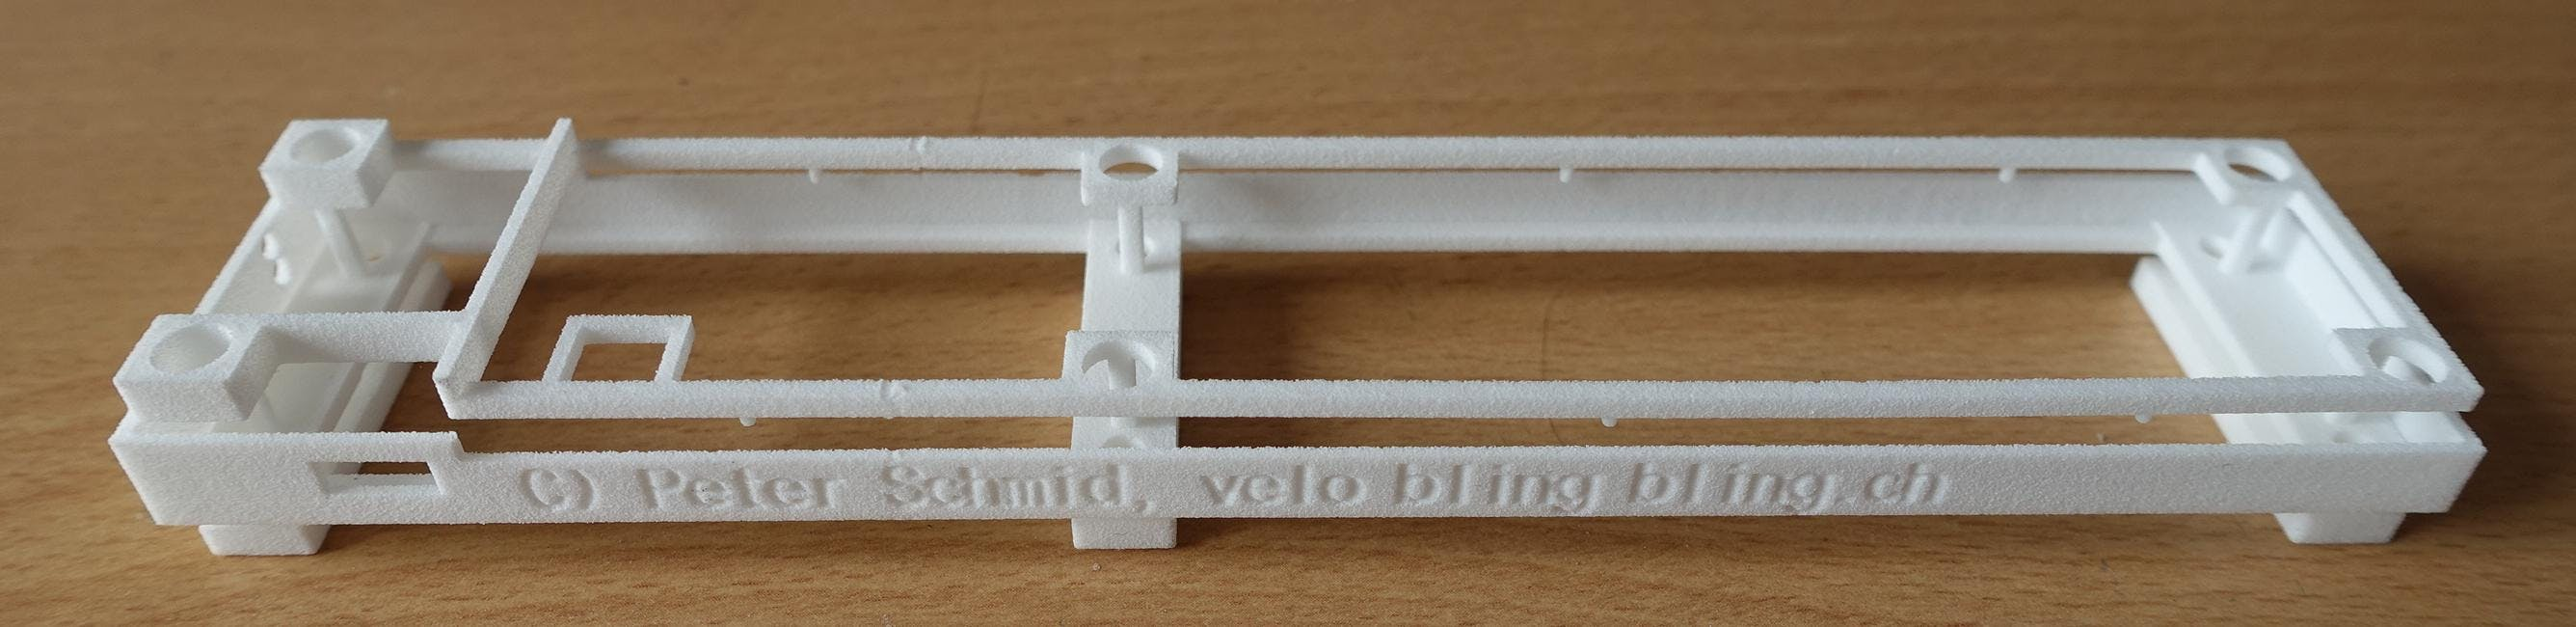 PCB Mounting Frame, 3D Printing Part